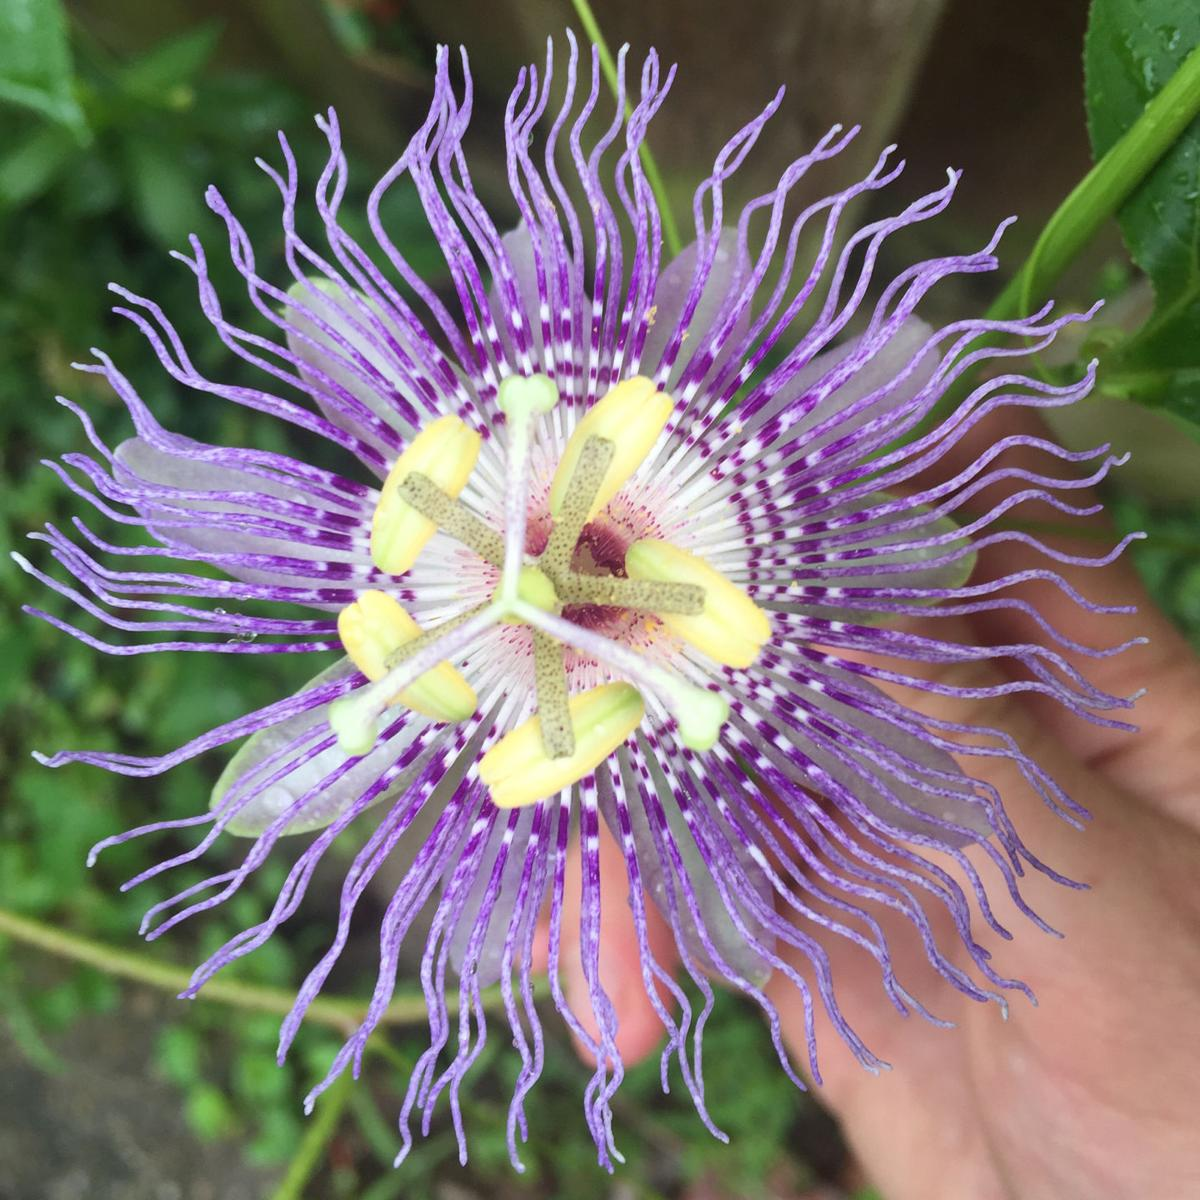 Travis Lemon Remedy Stress Anxiety Naturally With Passion Flower